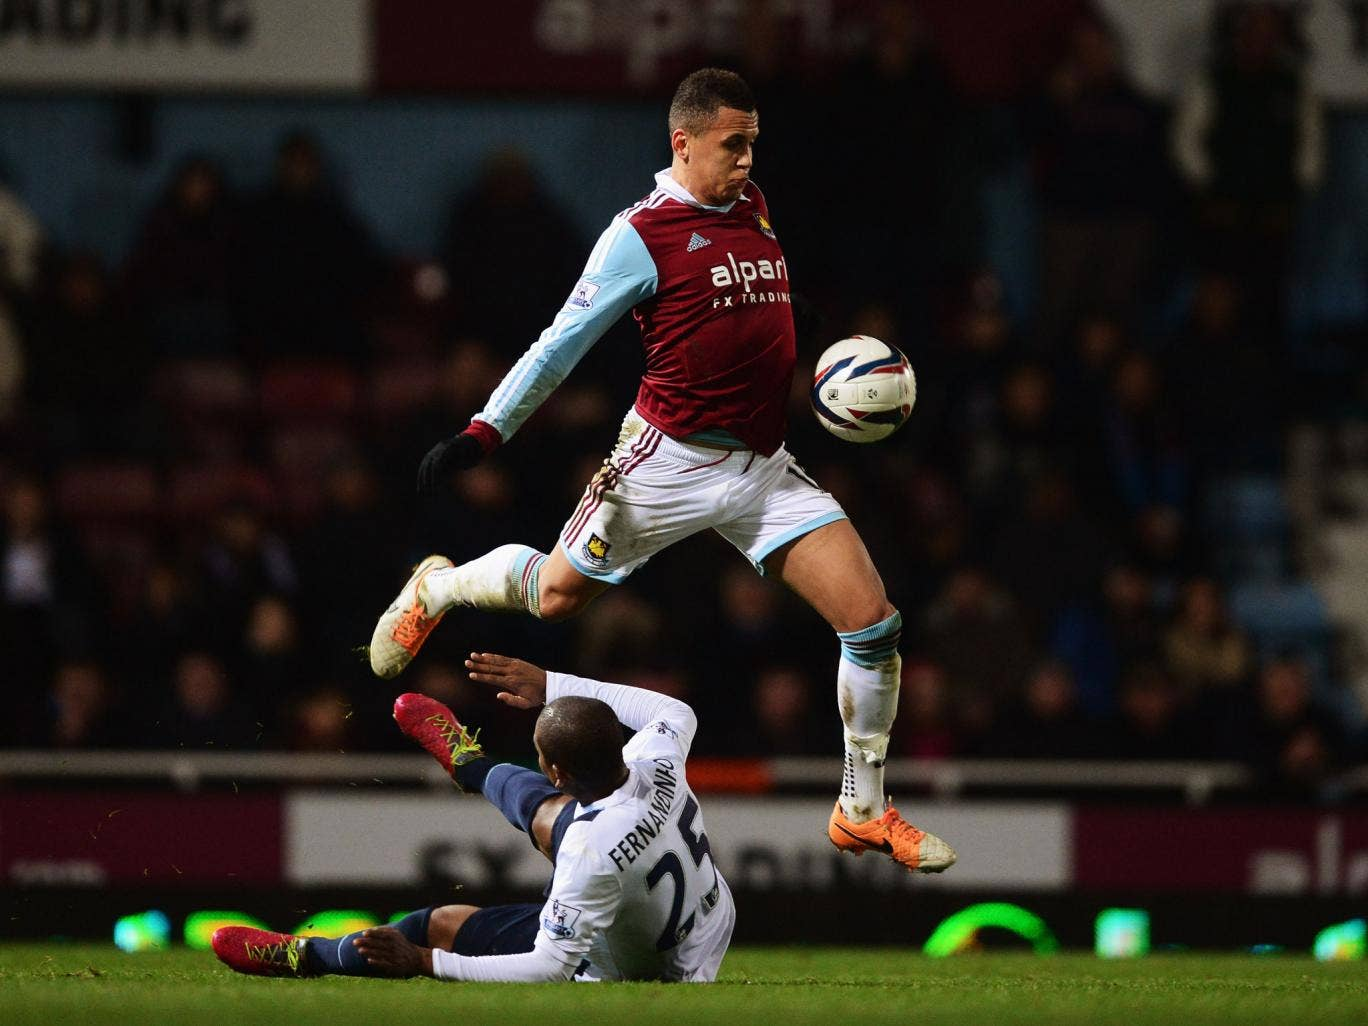 Ravel Morrison has been criticised by West Ham manager Sam Allardyce for not playing while he has suffered with a groin injury